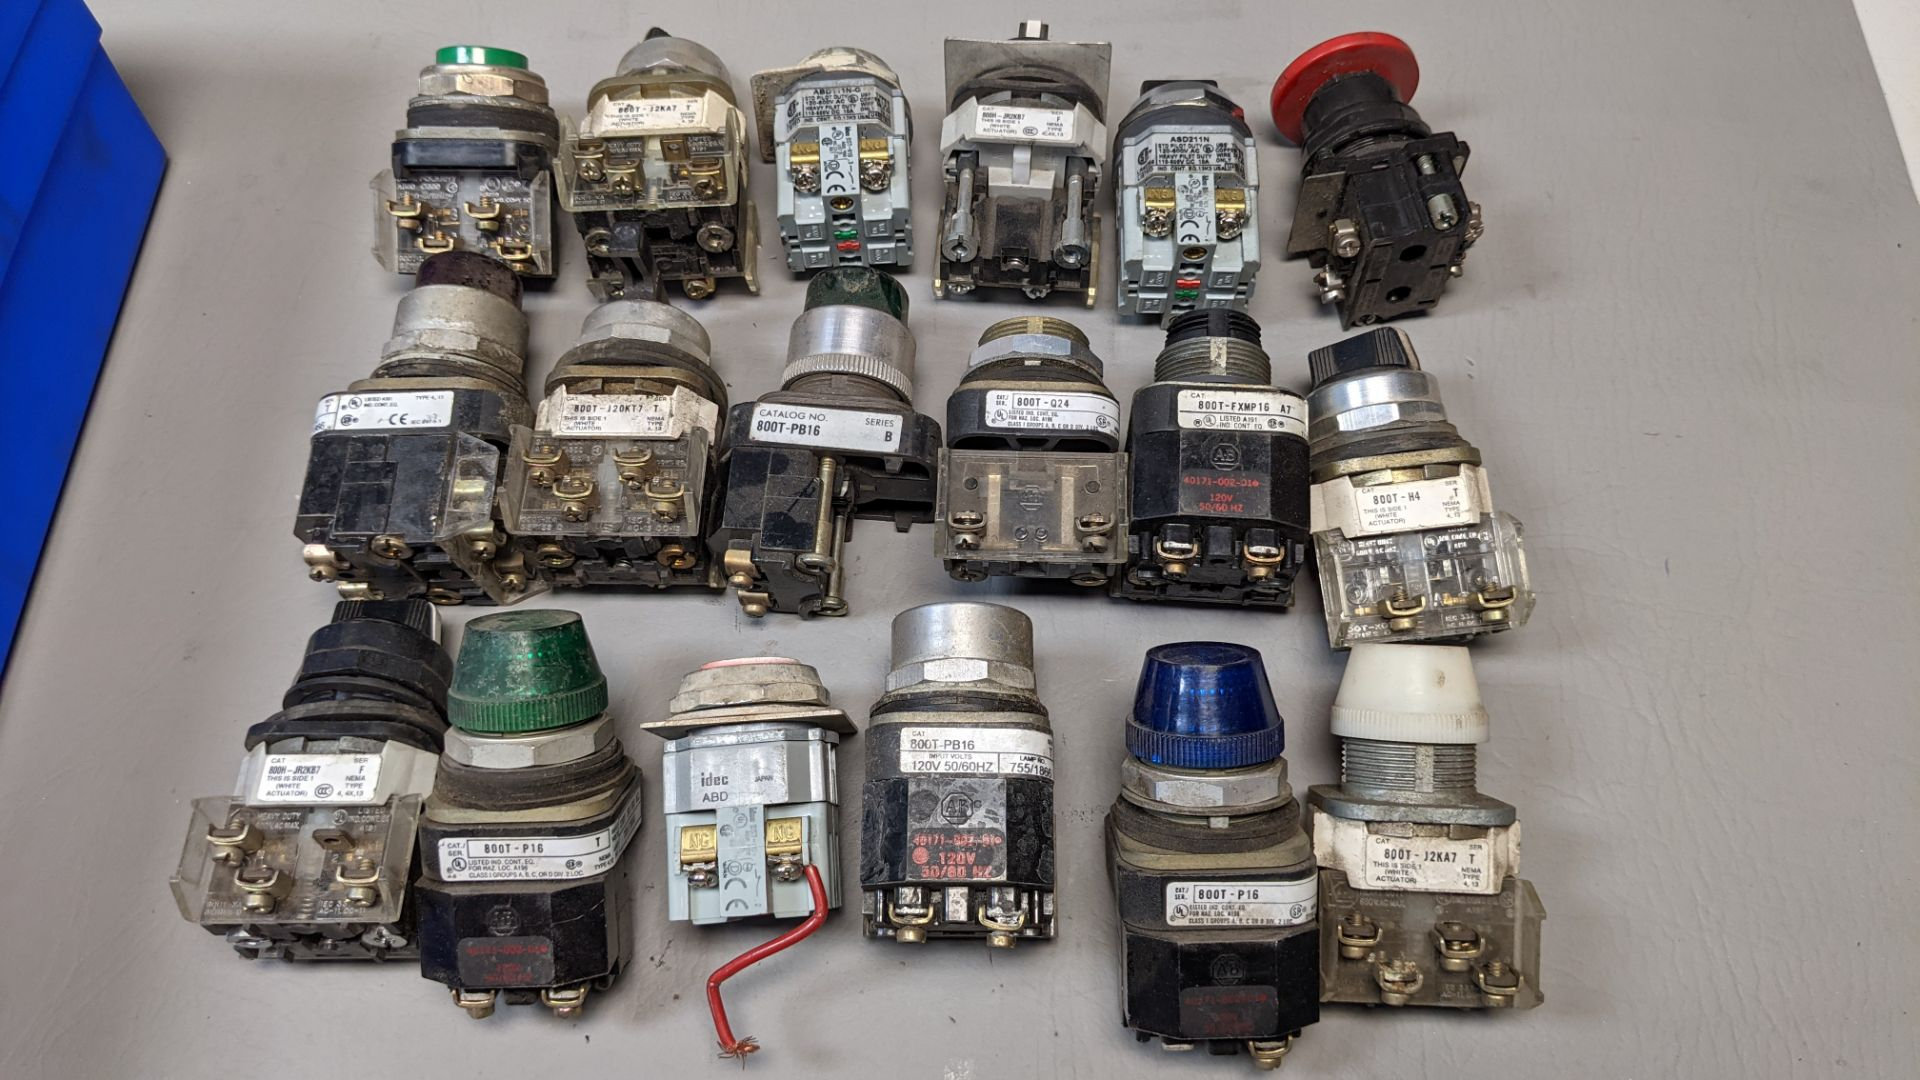 LOT OF PUSHBUTTONS, PILOT LIGHTS, SELECTOR SWITCHES